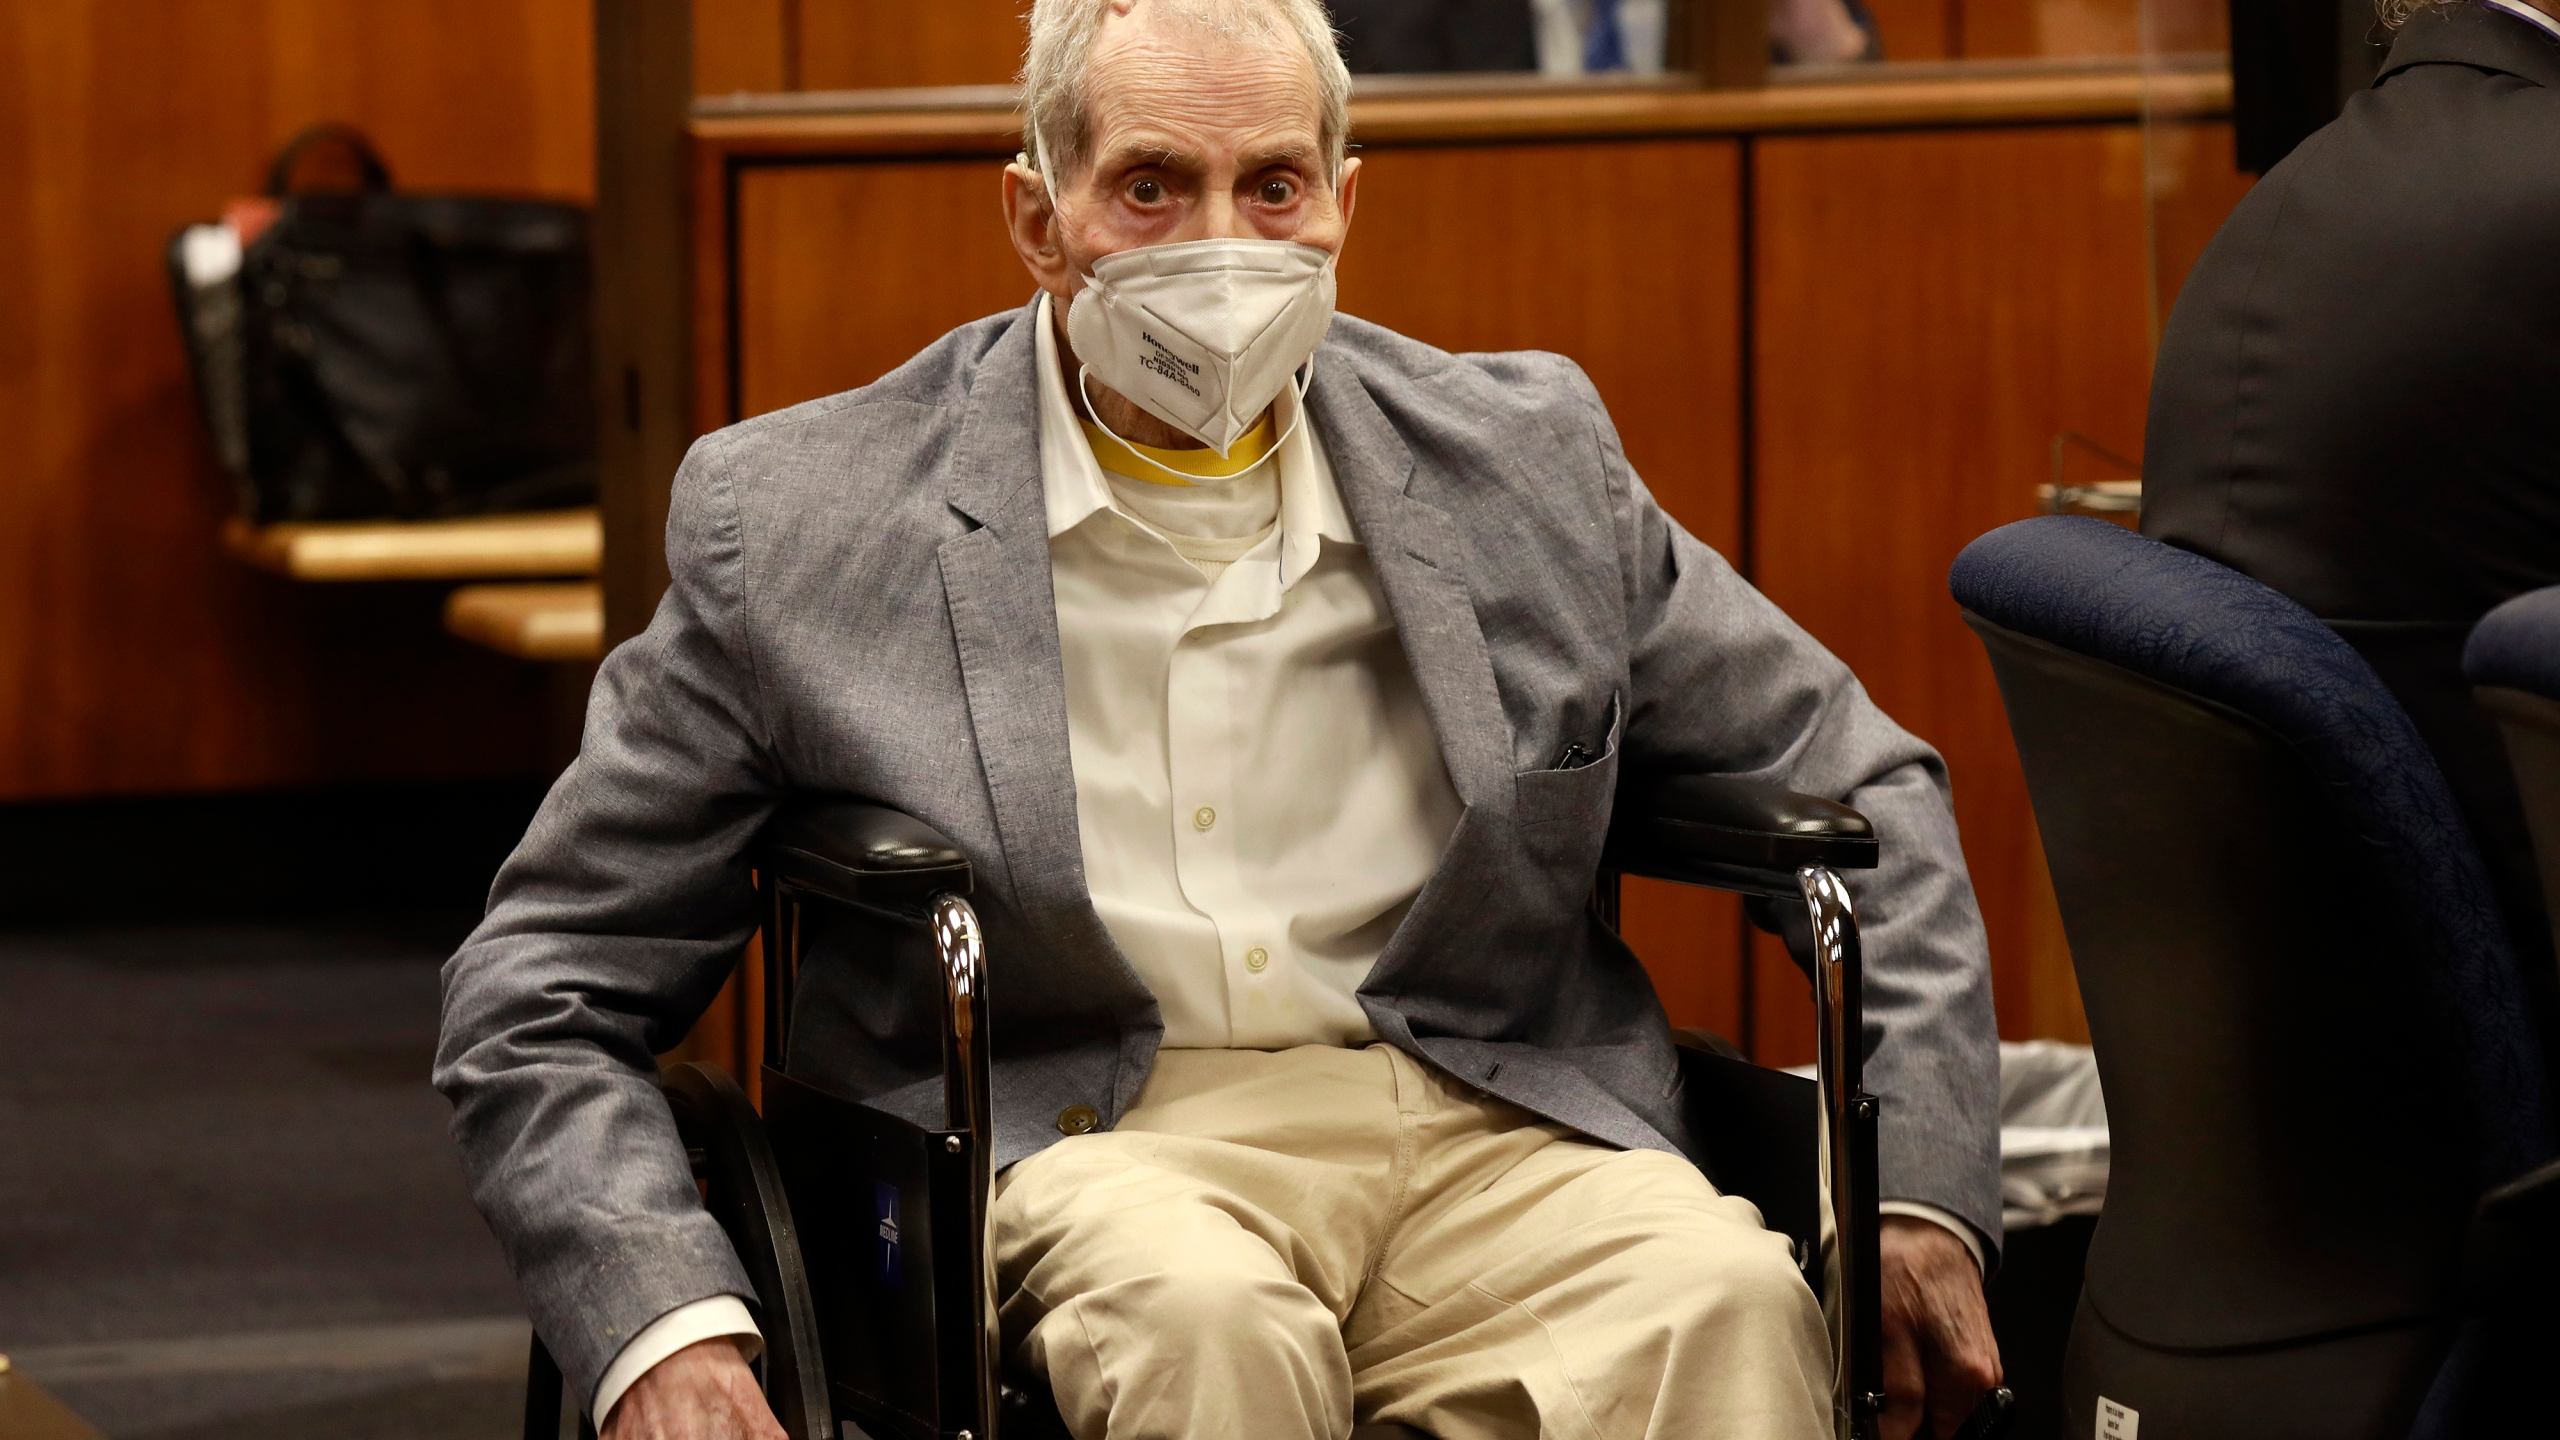 Robert Durst in his wheelchair spins in place as he looks at people in the courtroom in Inglewood, Calif. on Sept. 8, 2021, with his attorneys for closing arguments presented by the prosecution. (Al Seib/Los Angeles Times via AP, Pool)